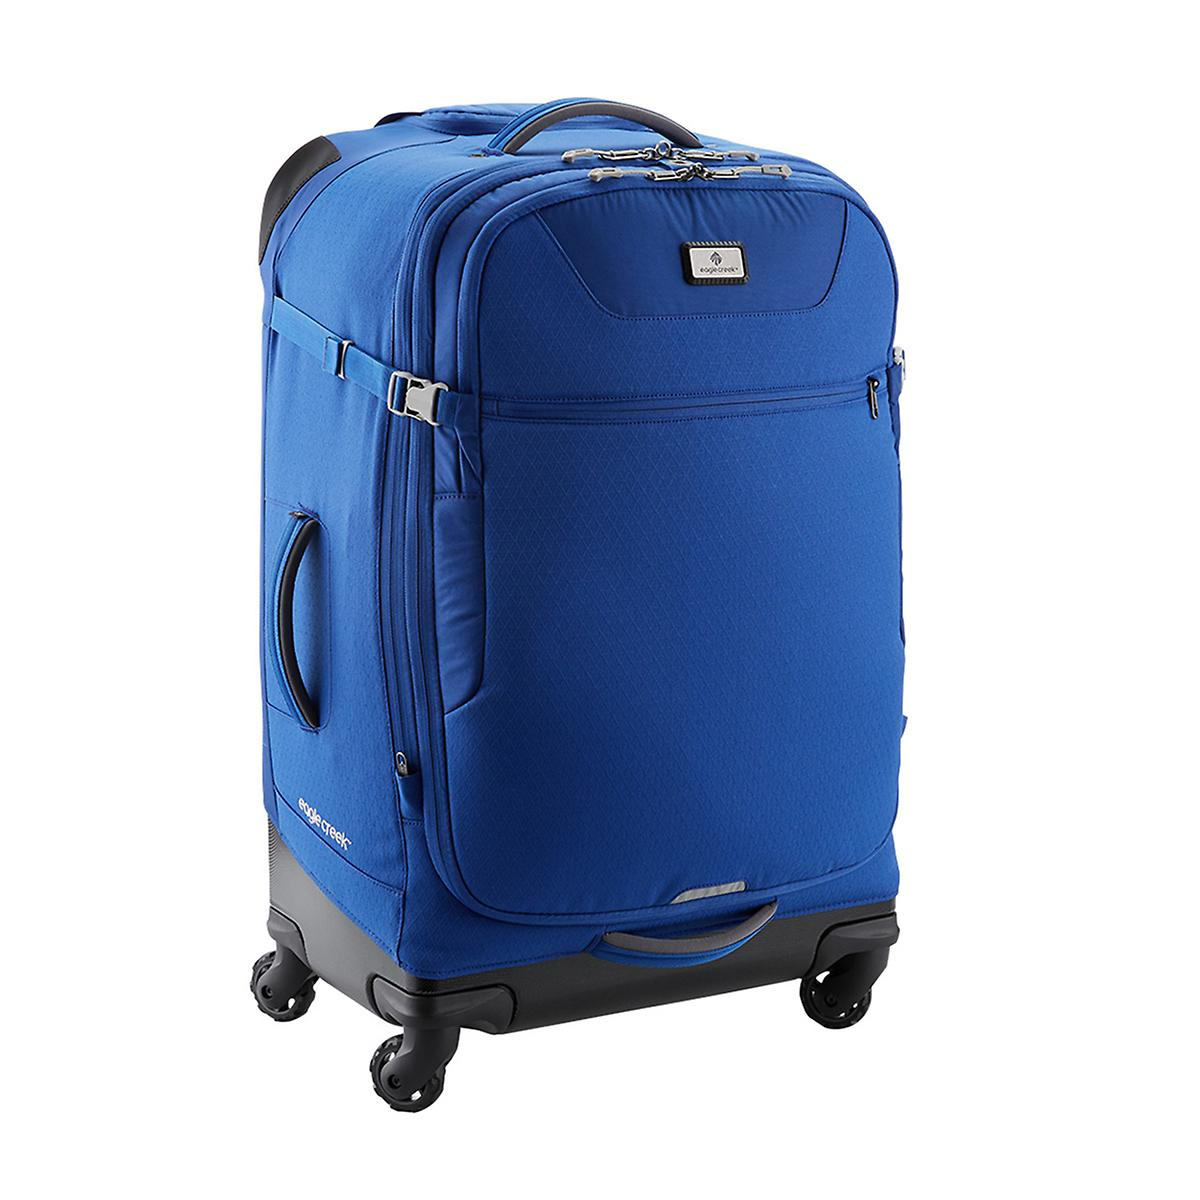 "Eagle Creek Blue 29"" Explore 4-Wheeled Luggage"